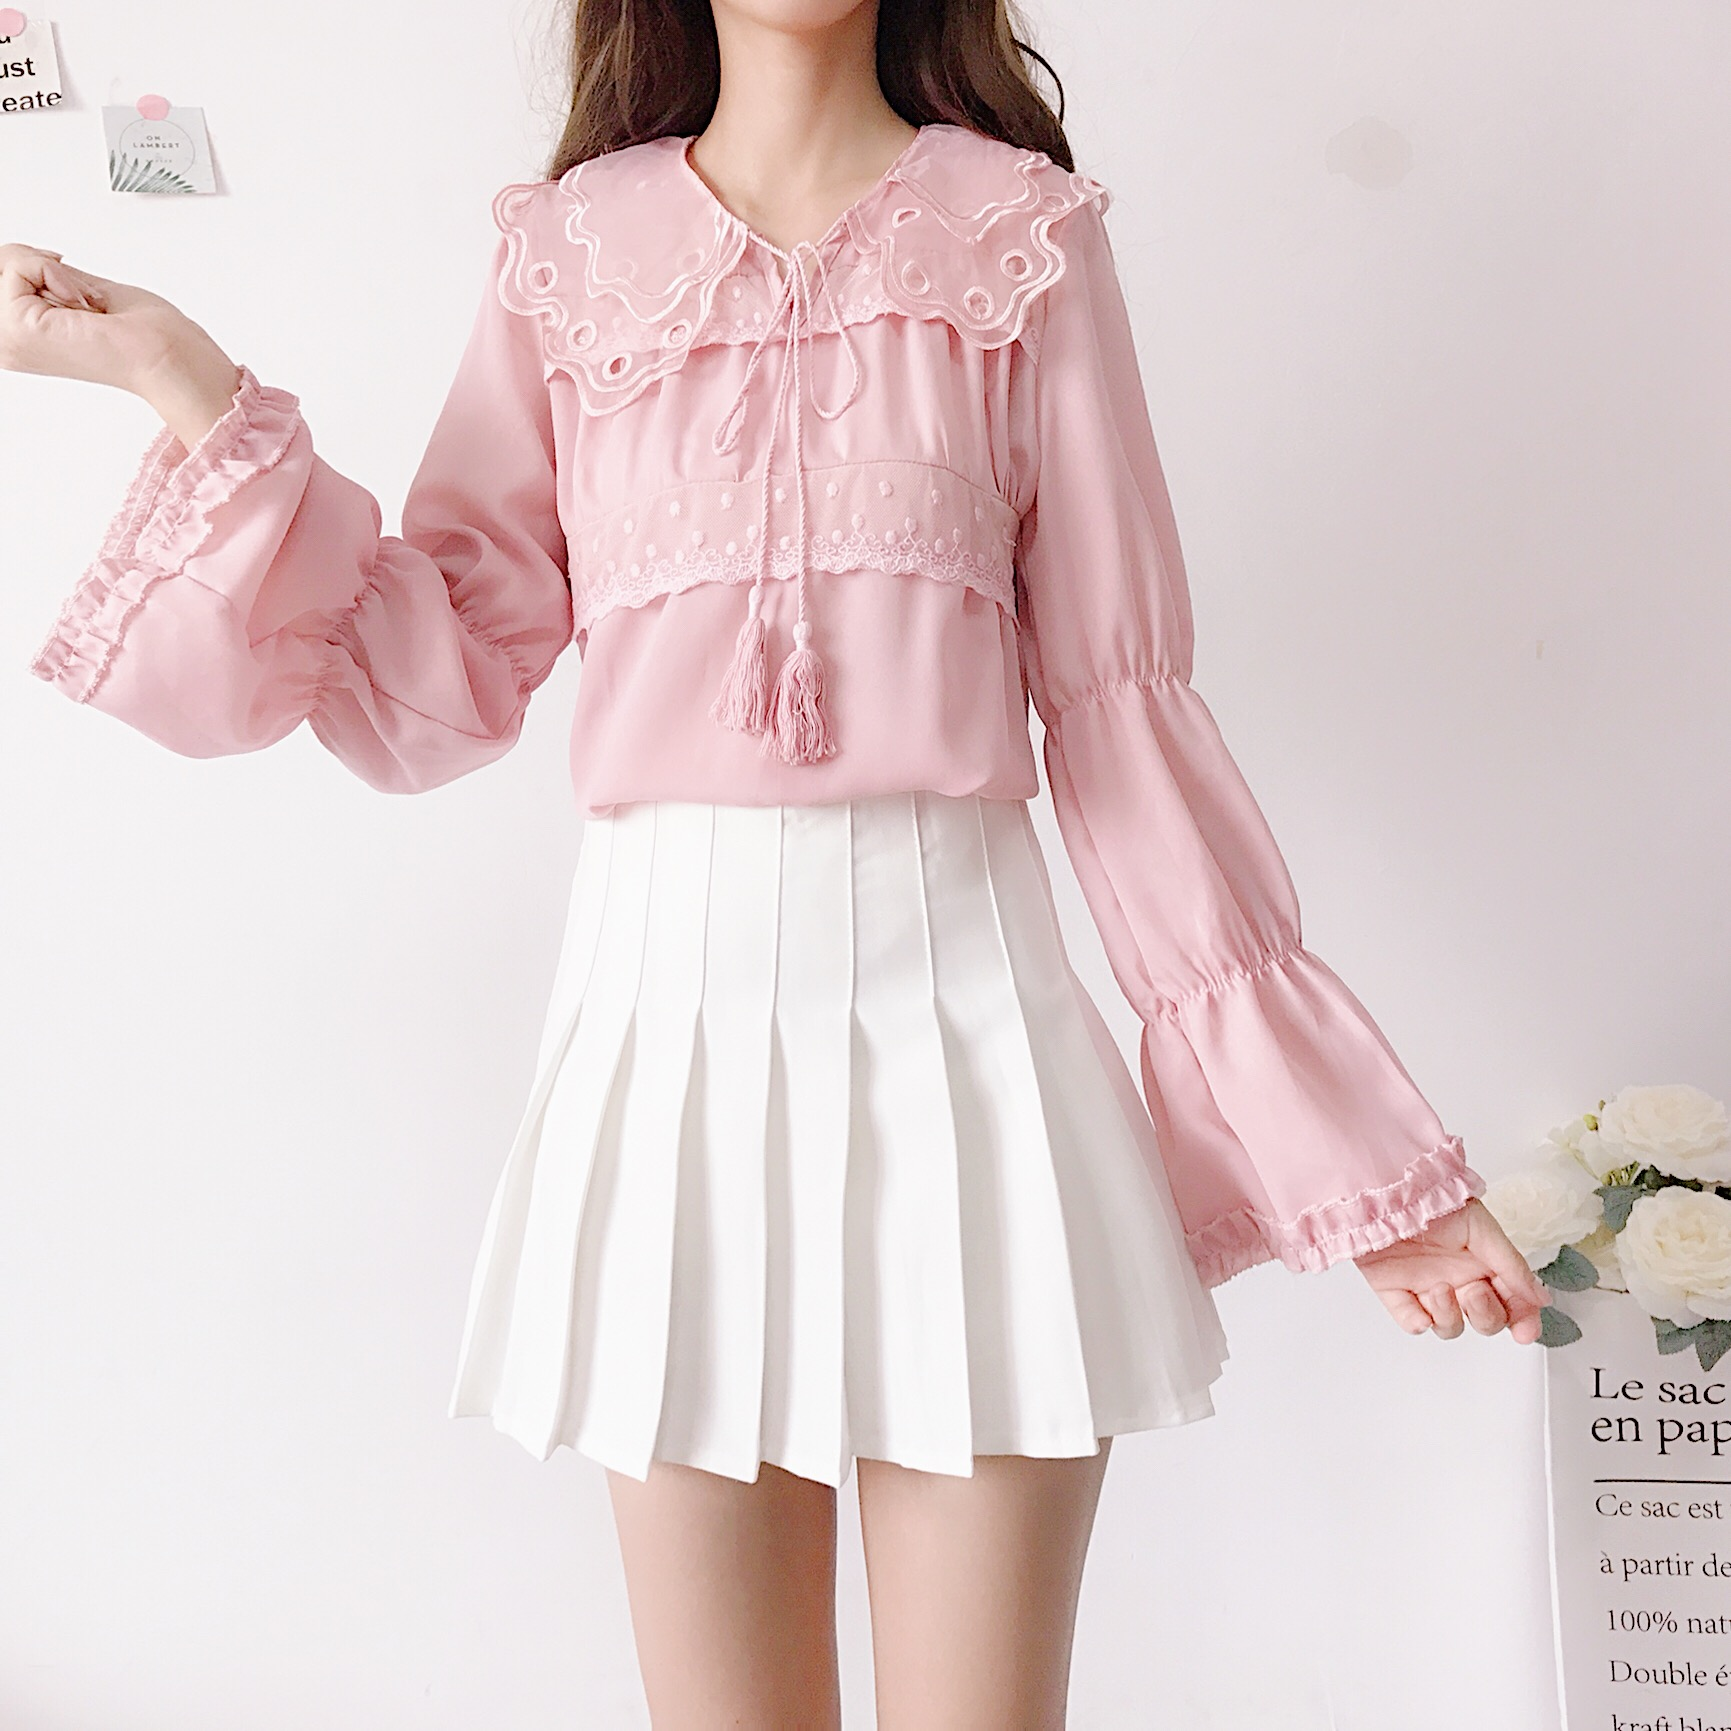 XS-3XL Women Skirt Preppy Style High Waist Chic Stitching Skirts Summer Student Pleated Skirt Women Cute Sweet Girls Dance Skirt 35